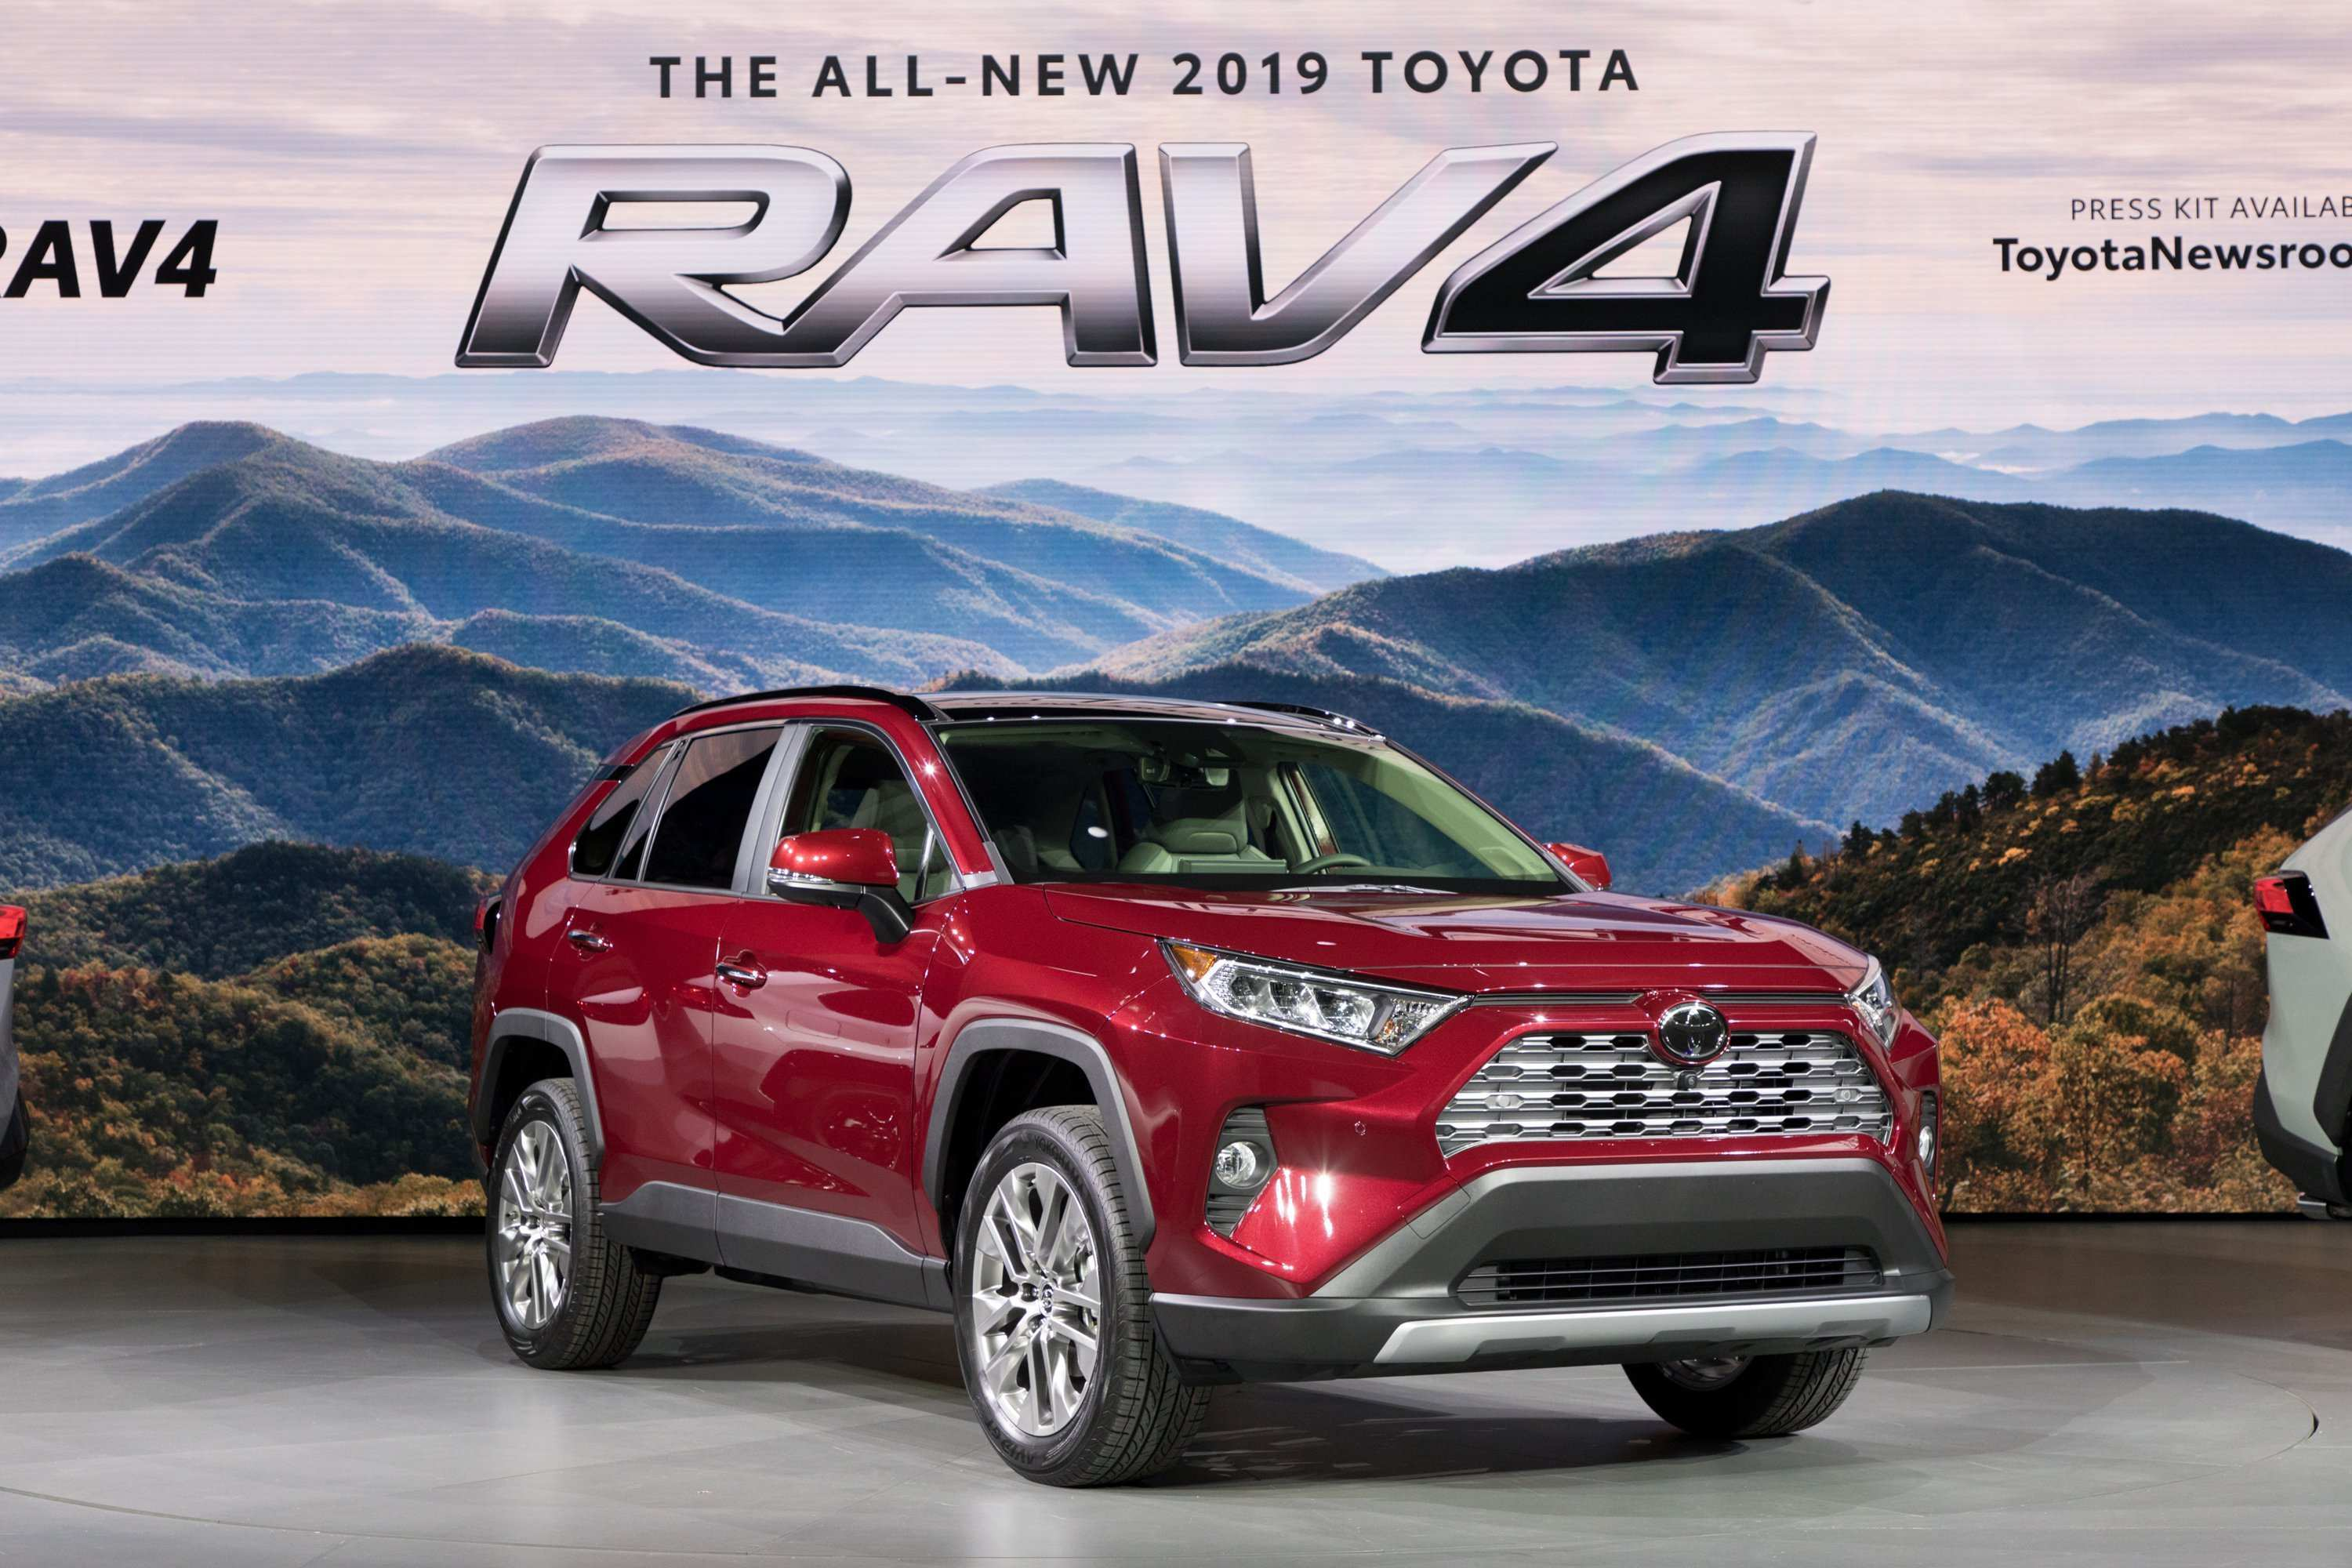 86 Concept of 2019 Toyota Rav4 Price Overview with 2019 Toyota Rav4 Price